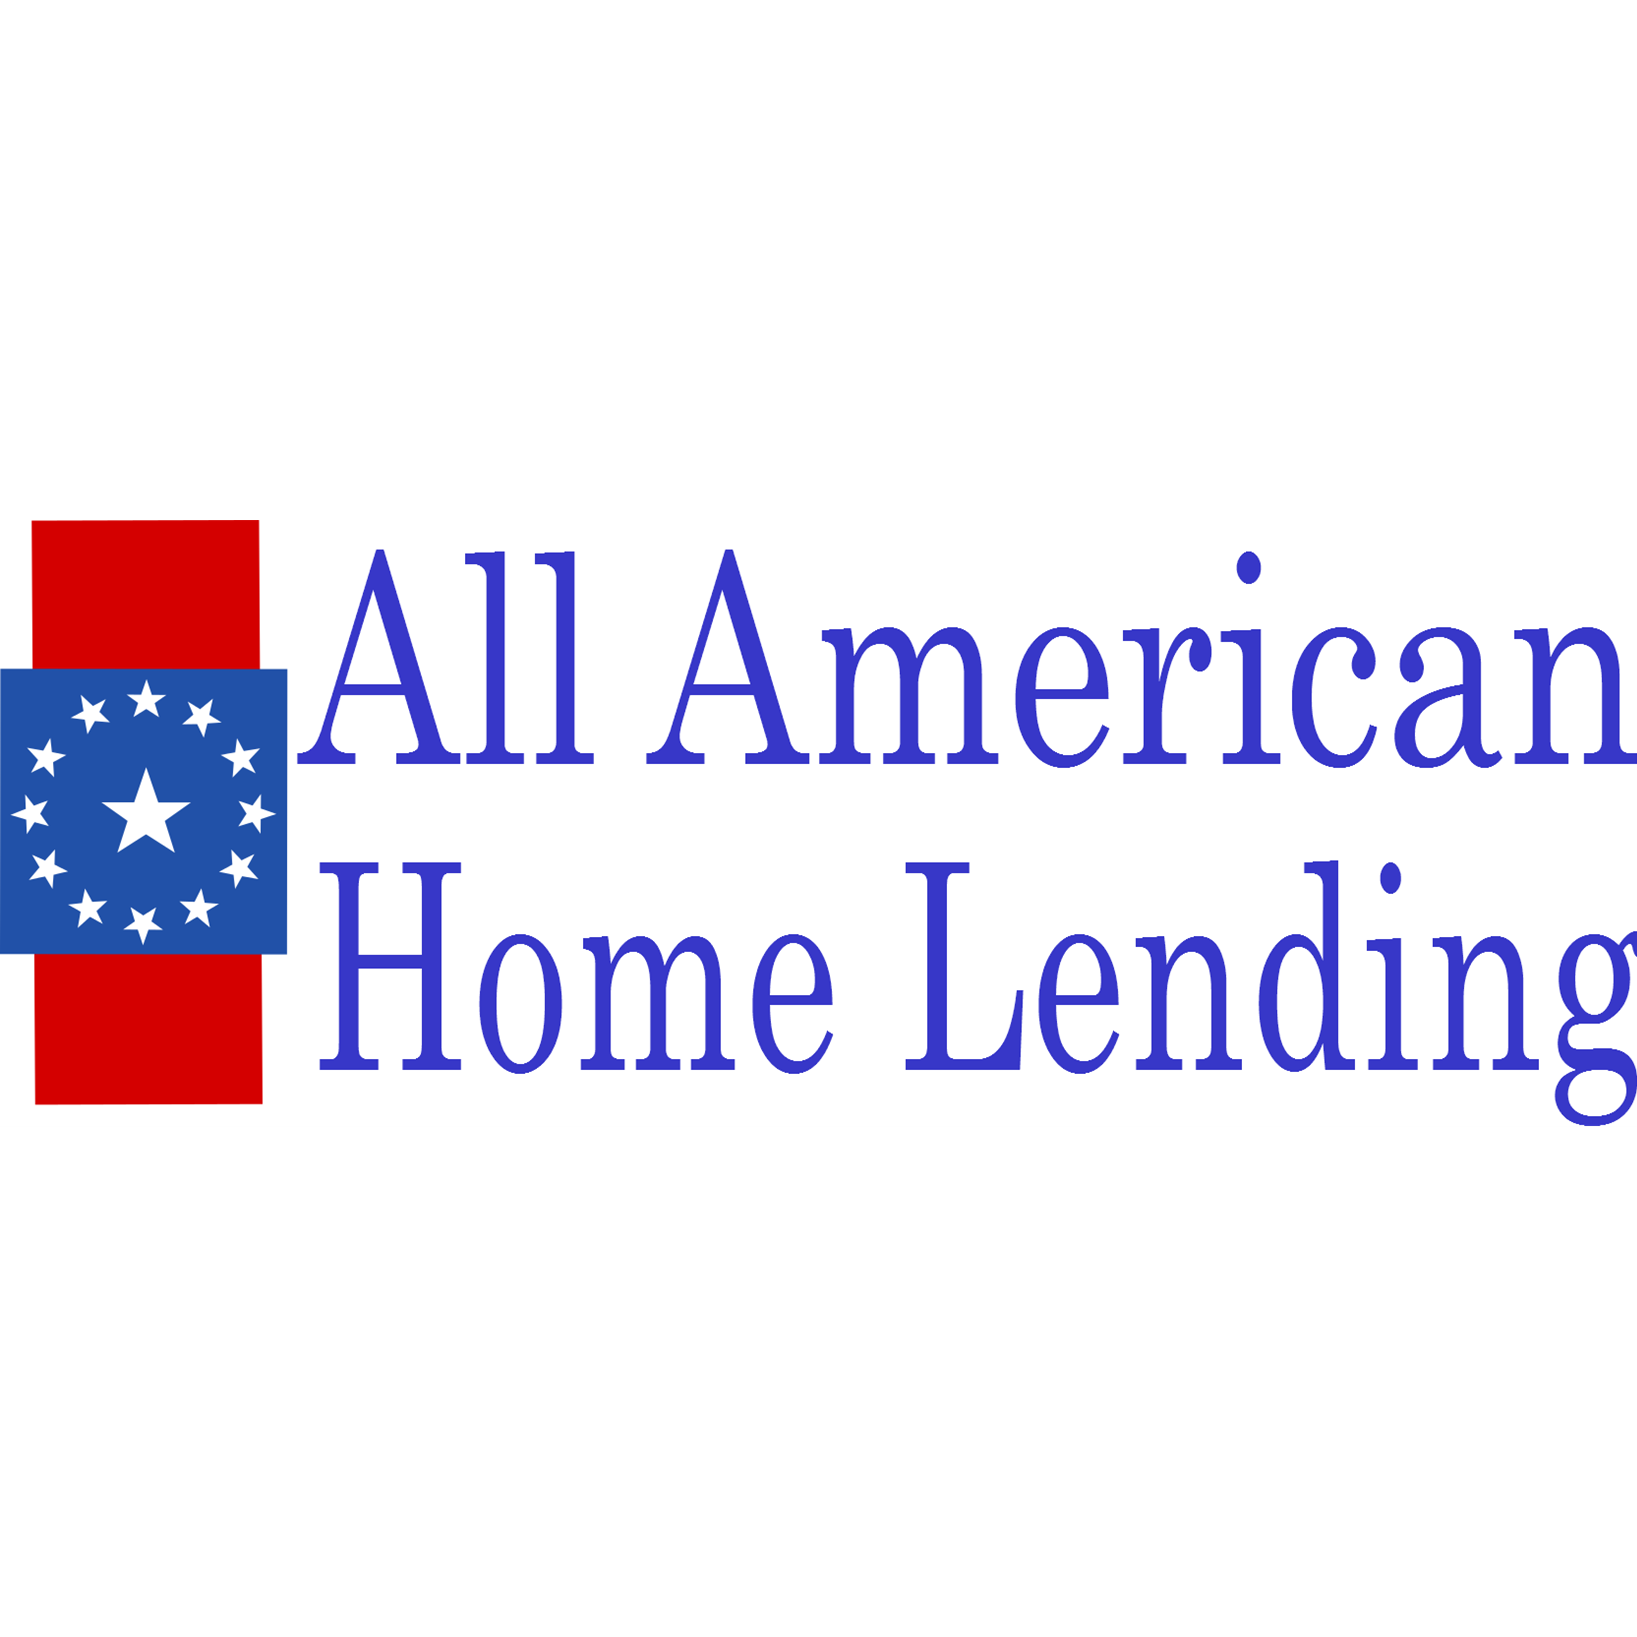 All American Home Lending, an affiliate of Polaris Home Funding Corp.